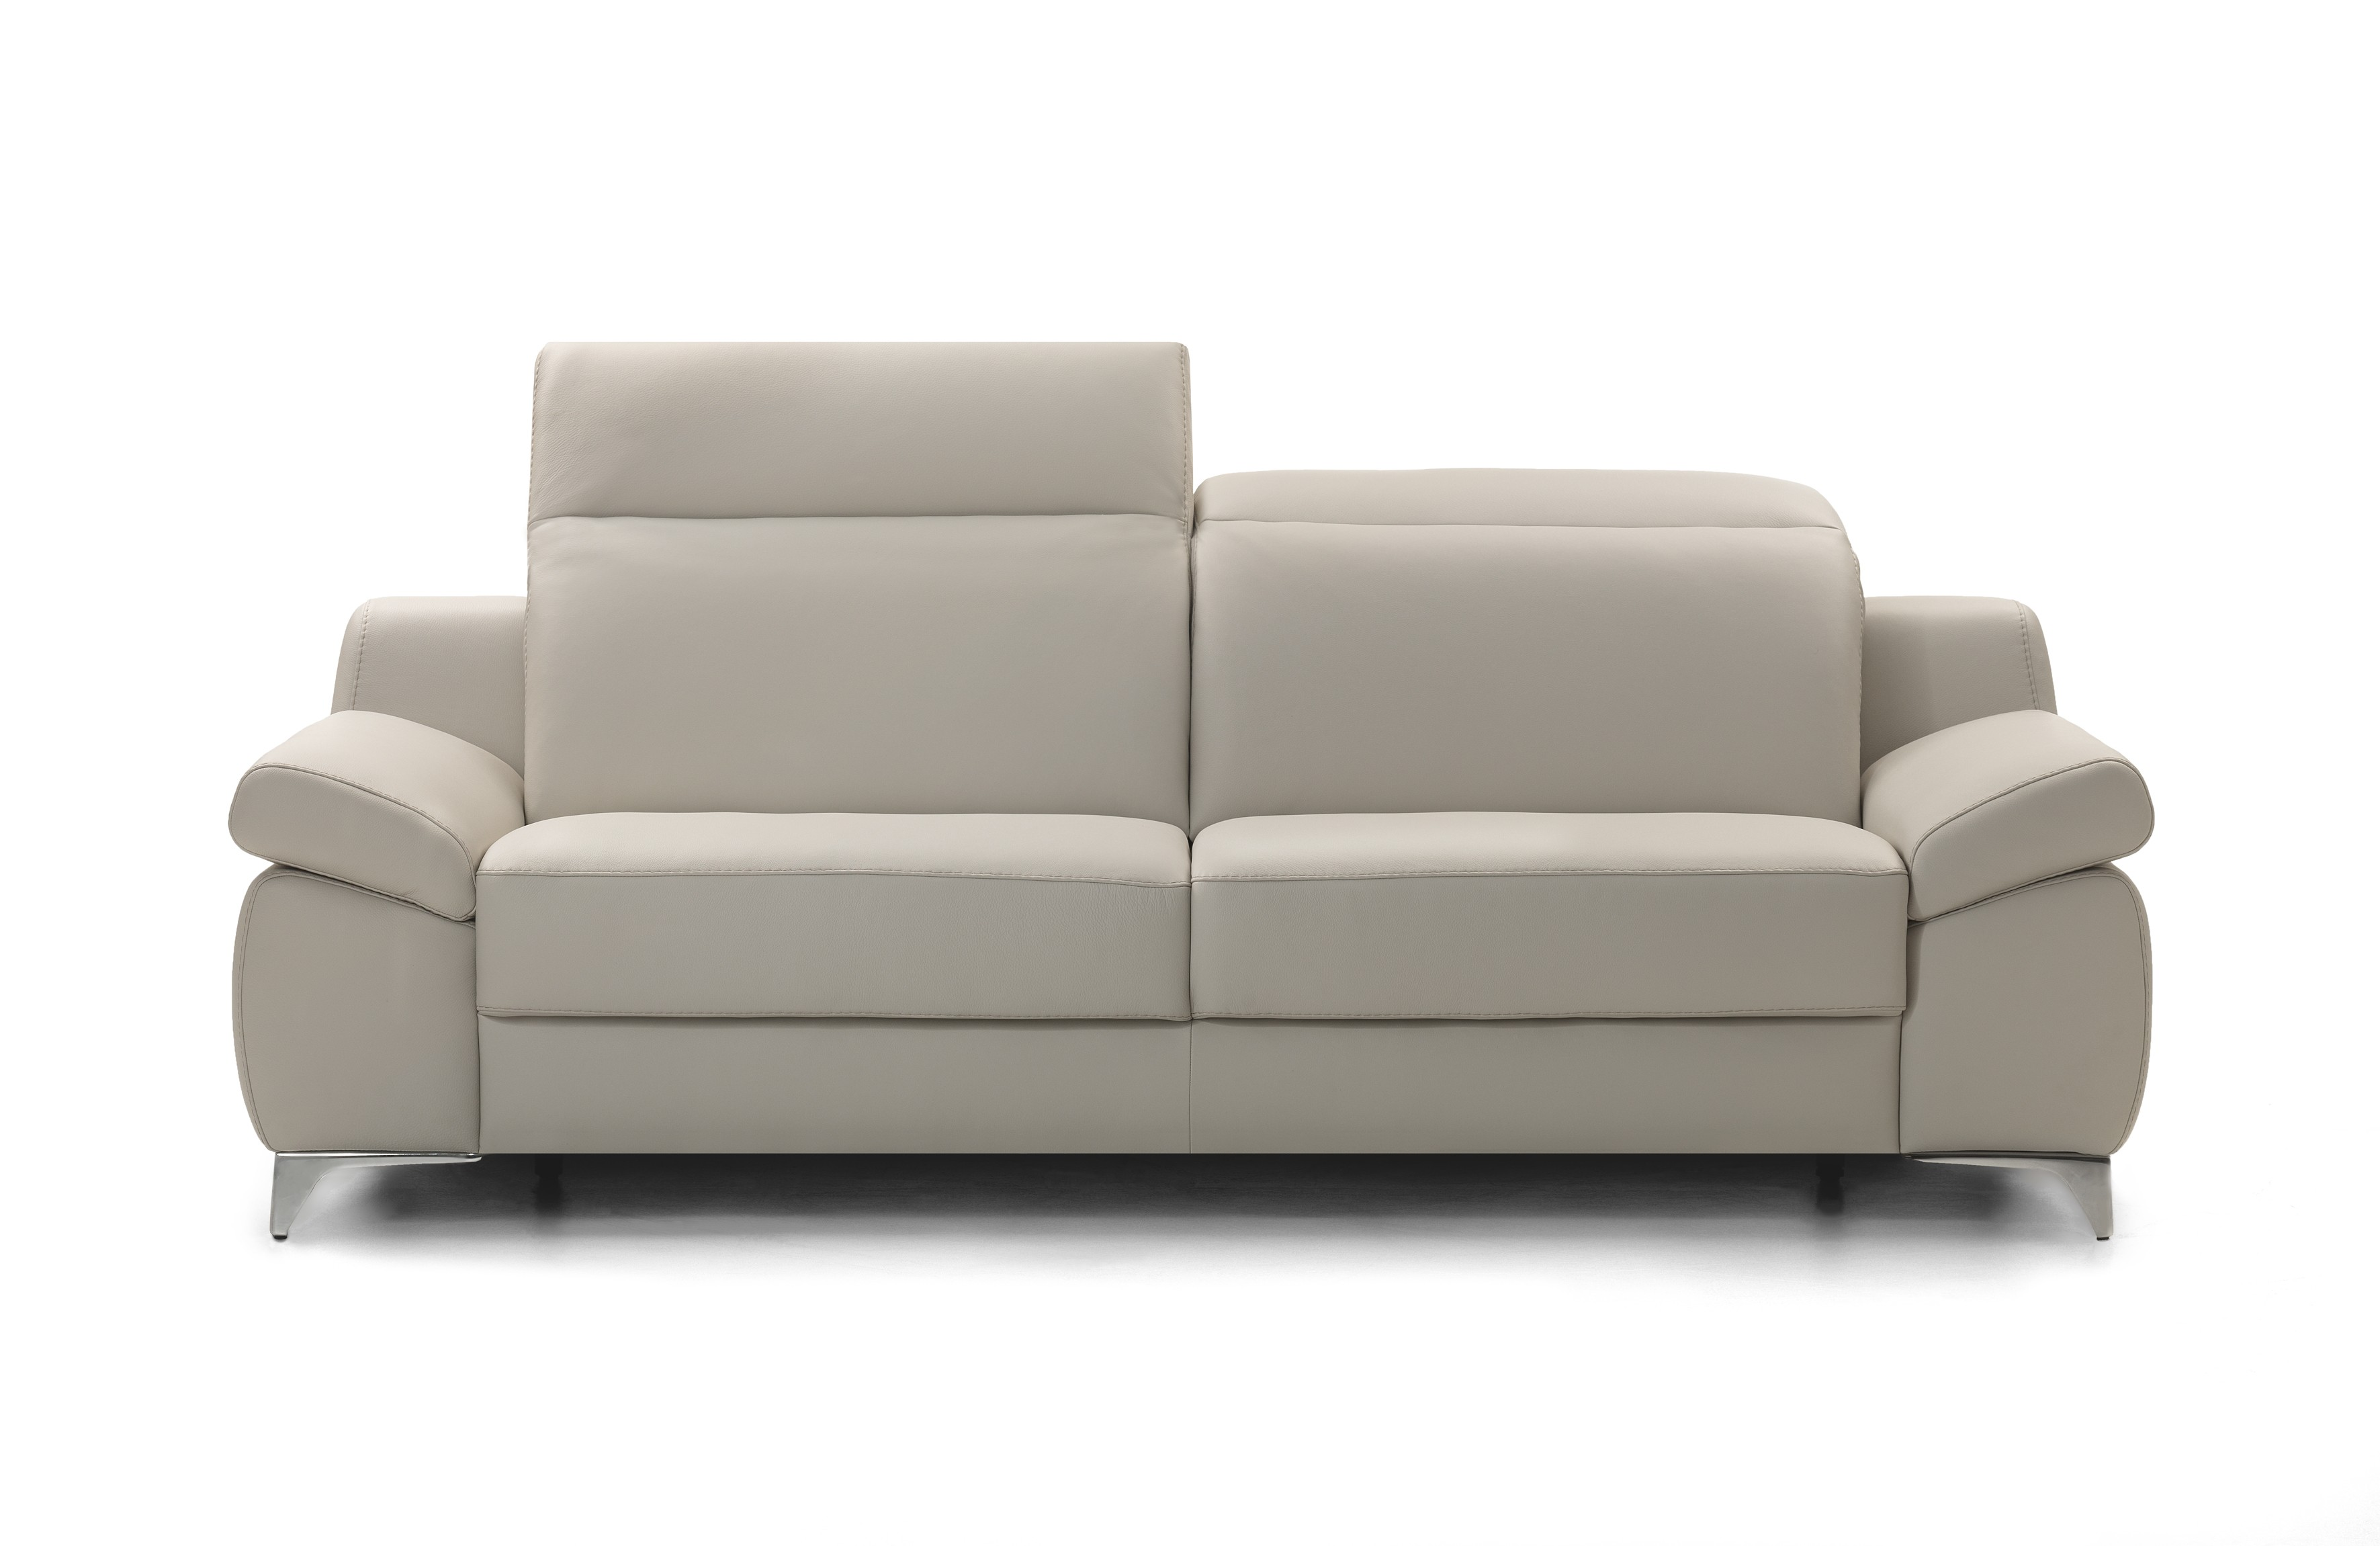 Belgium leather sofas home furniture sofa prices set philippines thesofa Our home furniture prices philippines